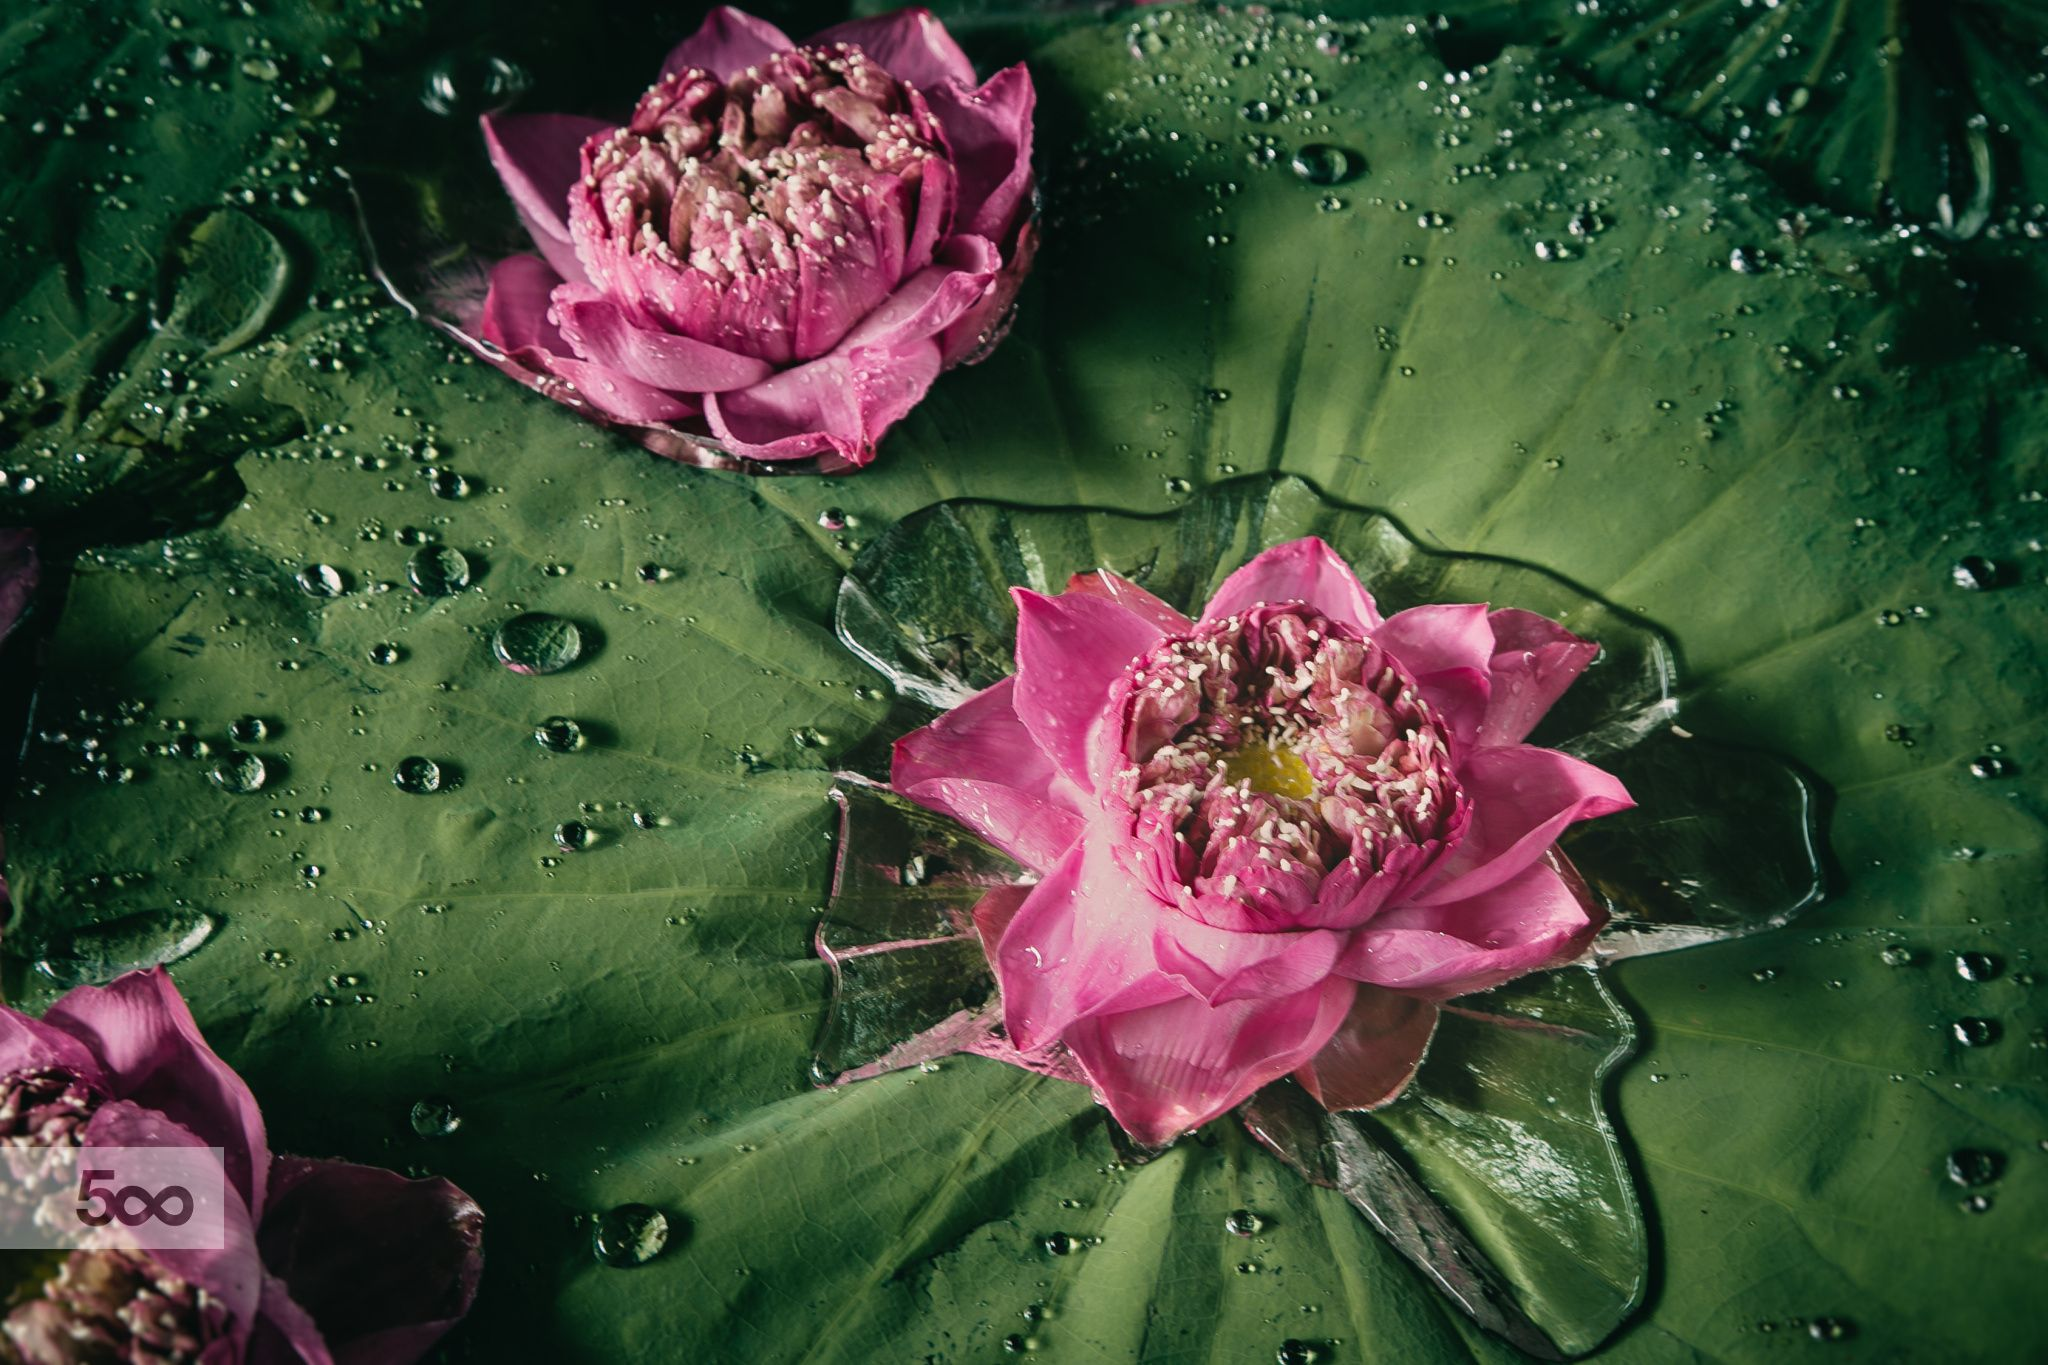 Opening Up To All Of Its Surrounding T He Fully Opened Pink Lotus